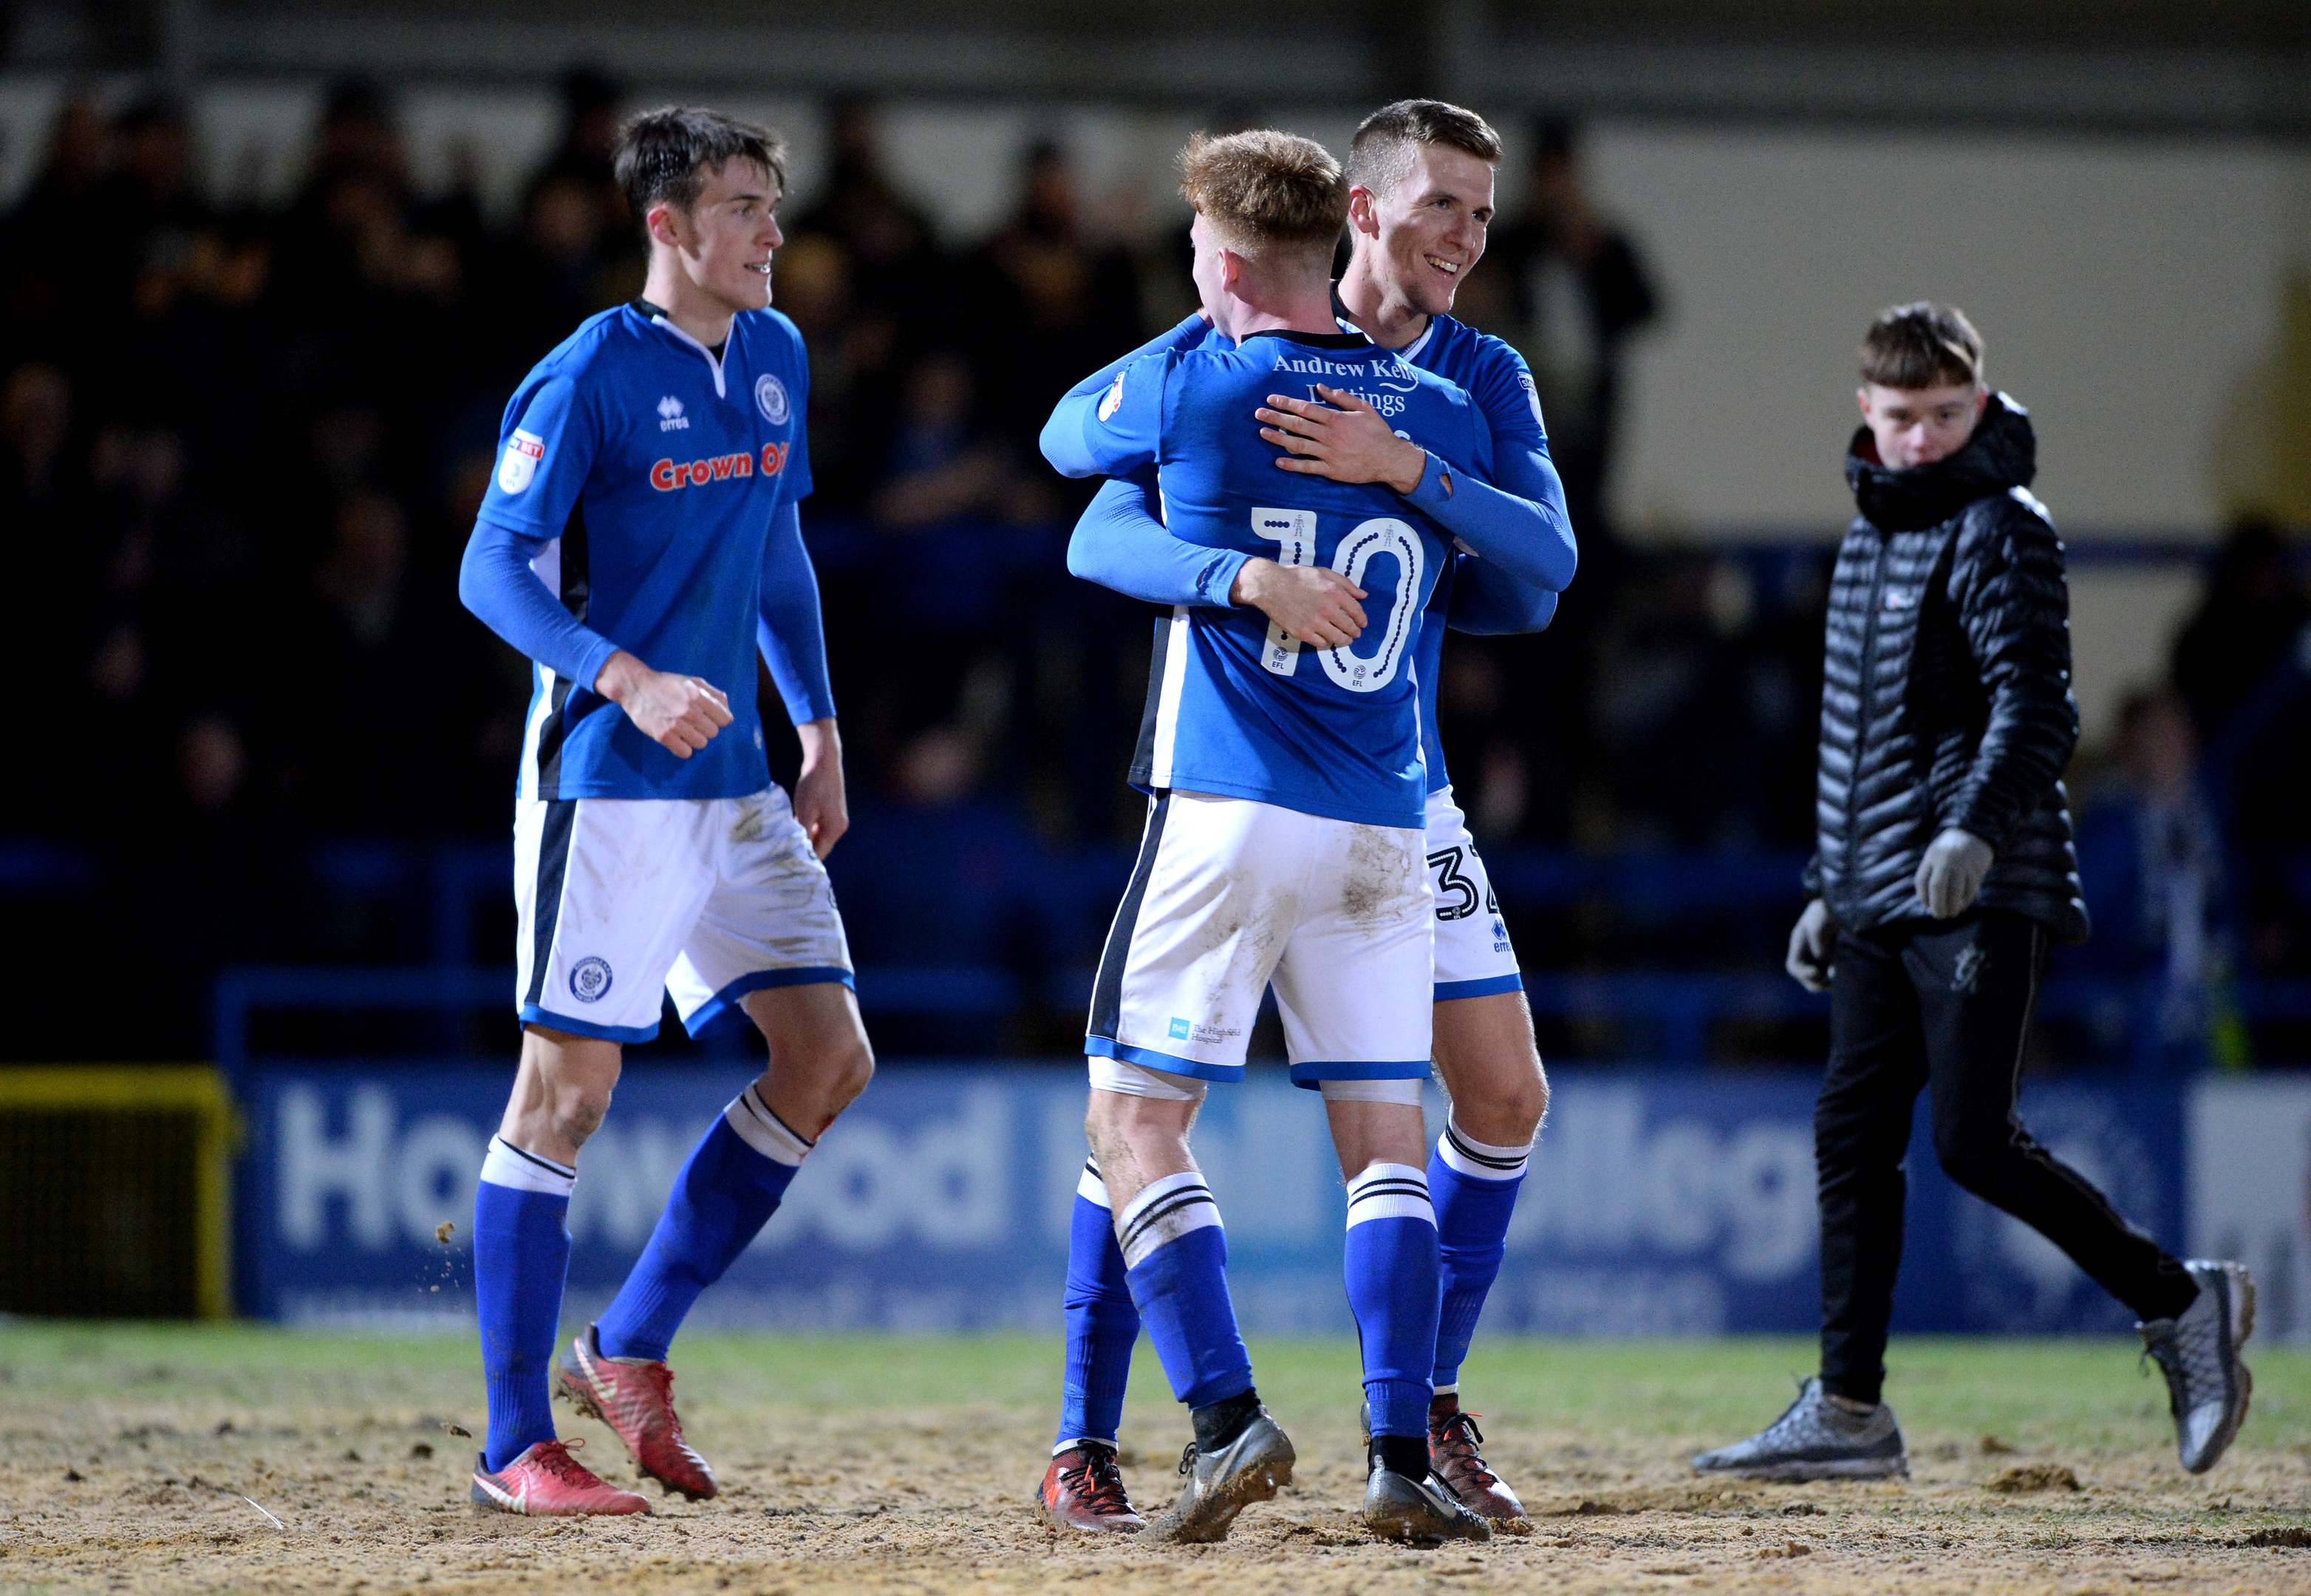 Rochdale celebrate their win over Millwall, but Spurs aren't popping corks about their pitch (Nathan Stirk/Getty Images)